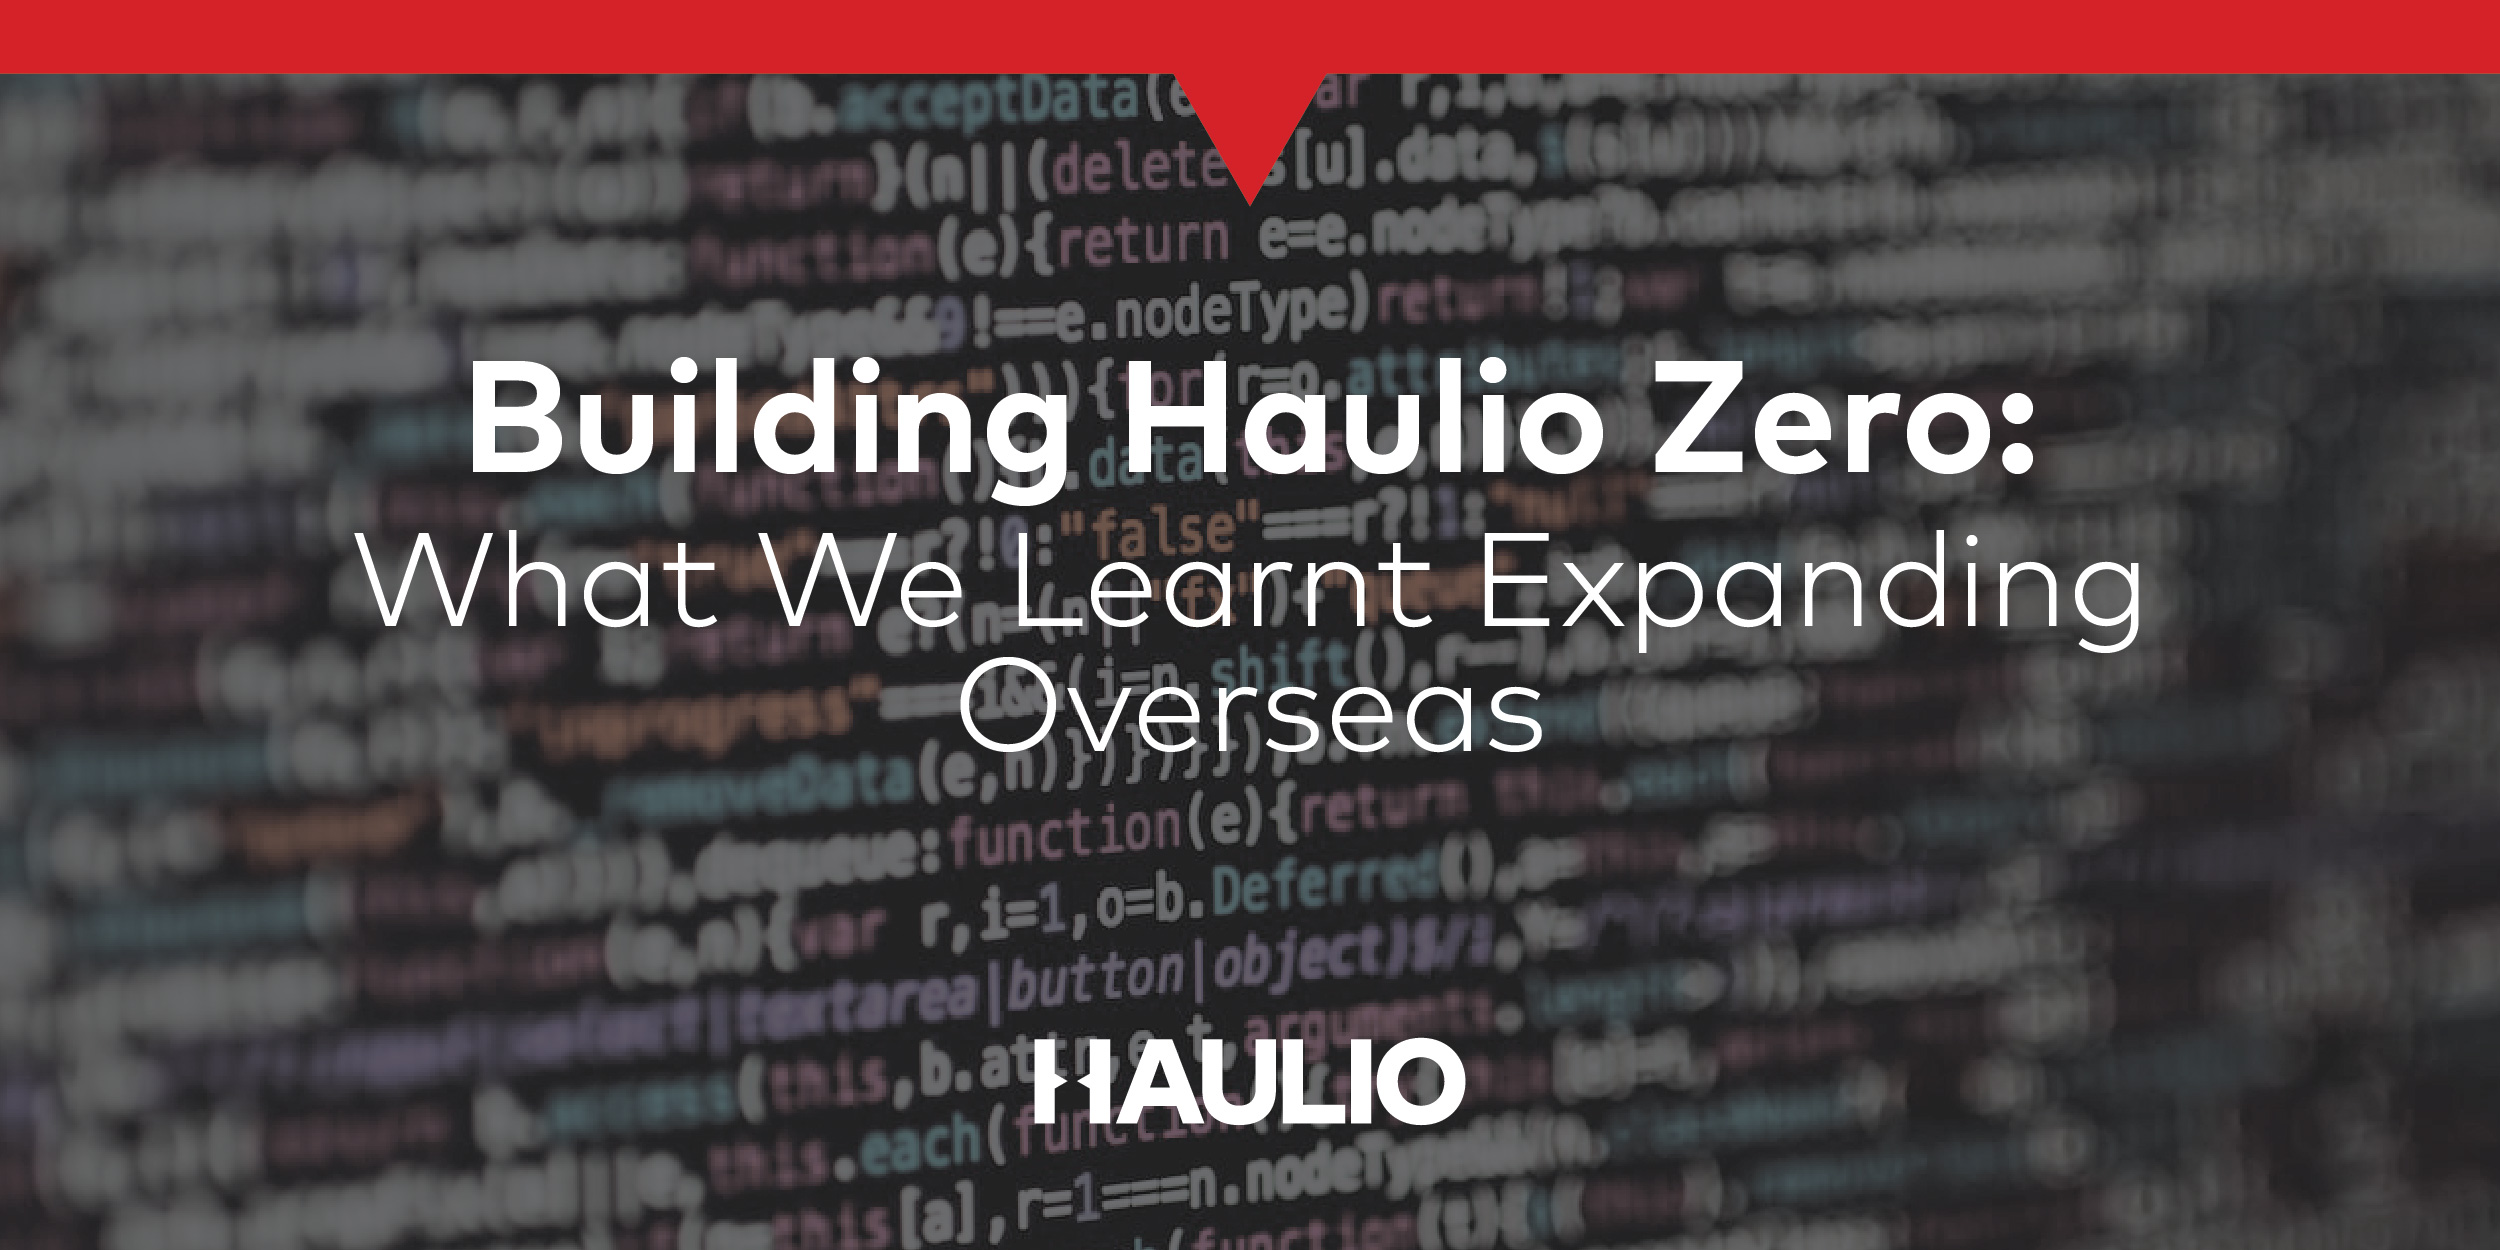 Building Haulio Zero: What We Learnt Expanding Overseas